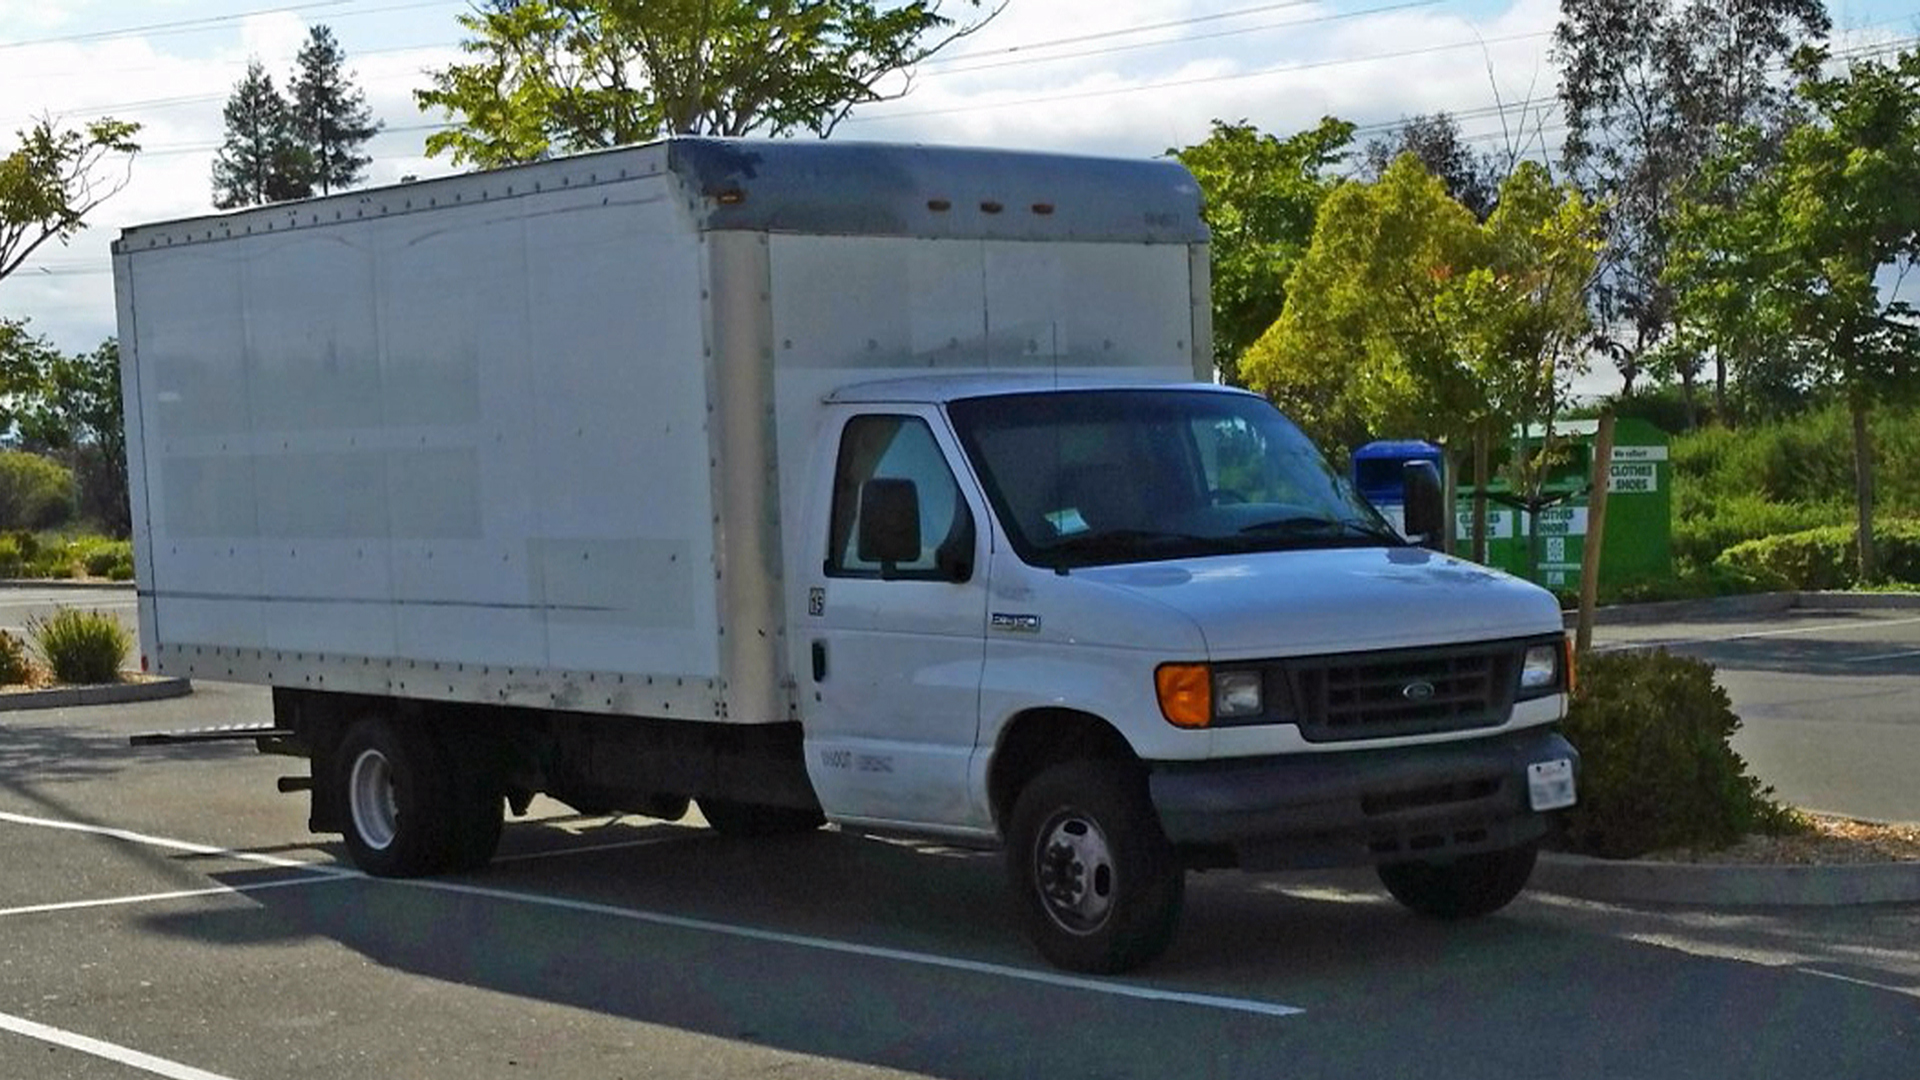 23-Year-Old Google Employee Lives in a Truck to Save Money, See Inside